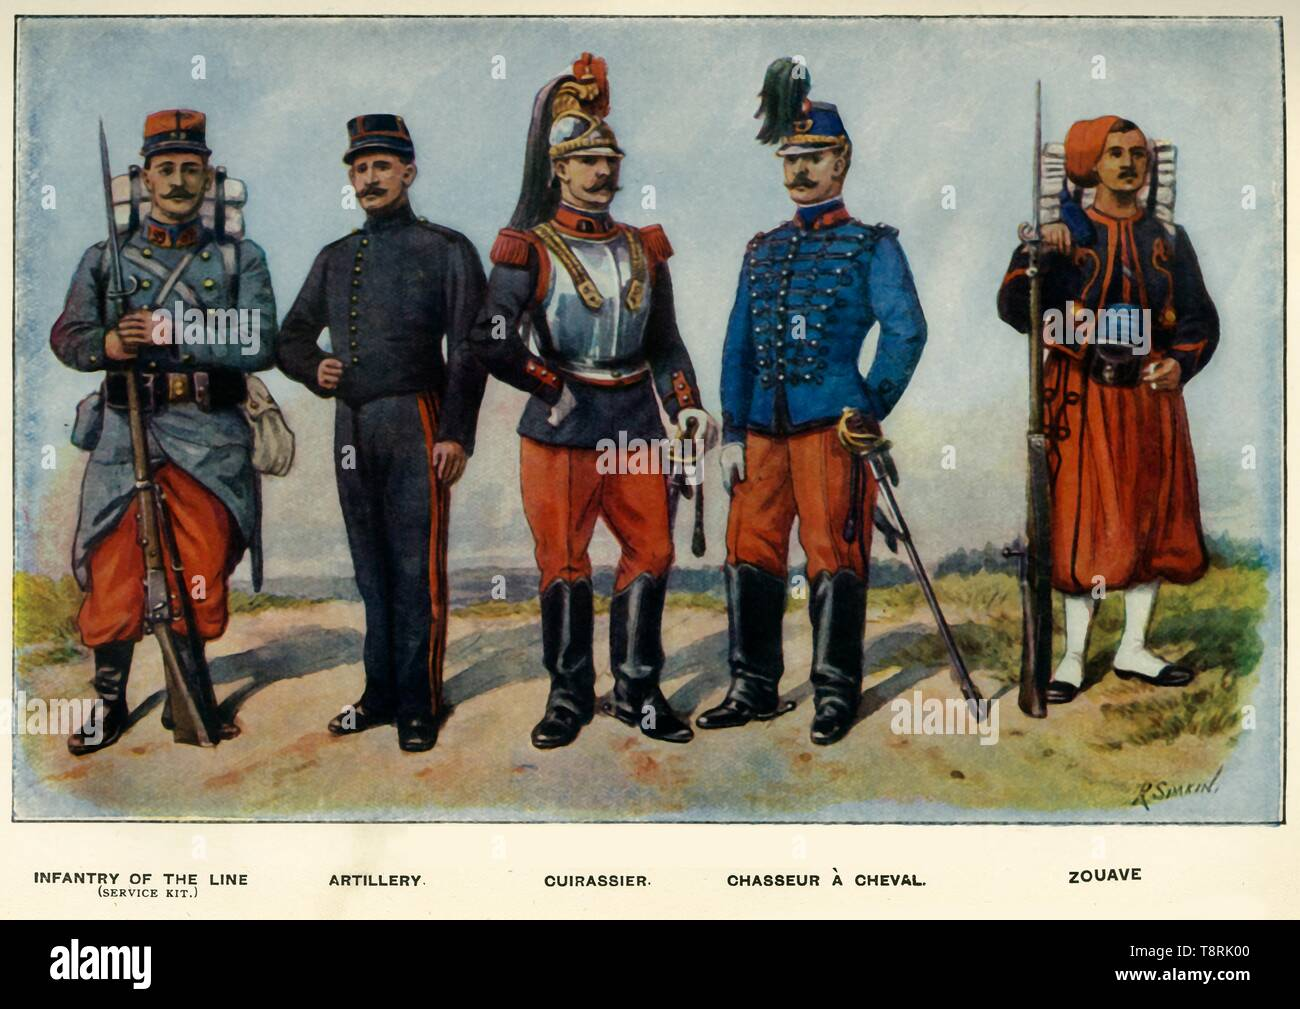 """'Types of the French Army', 1919. Soldiers serving in the First World War, 1914-1919: Infantry of the Line (service kit); Artillery; Cuirassier; Chasseur à Cheval; Zouave. From """"The History of the Great European War: its causes and effects"""", Vol. II, by W. Stanley Macbean Knight. [Caxton Pulishing Company, Limited, London, 1919] - Stock Image"""